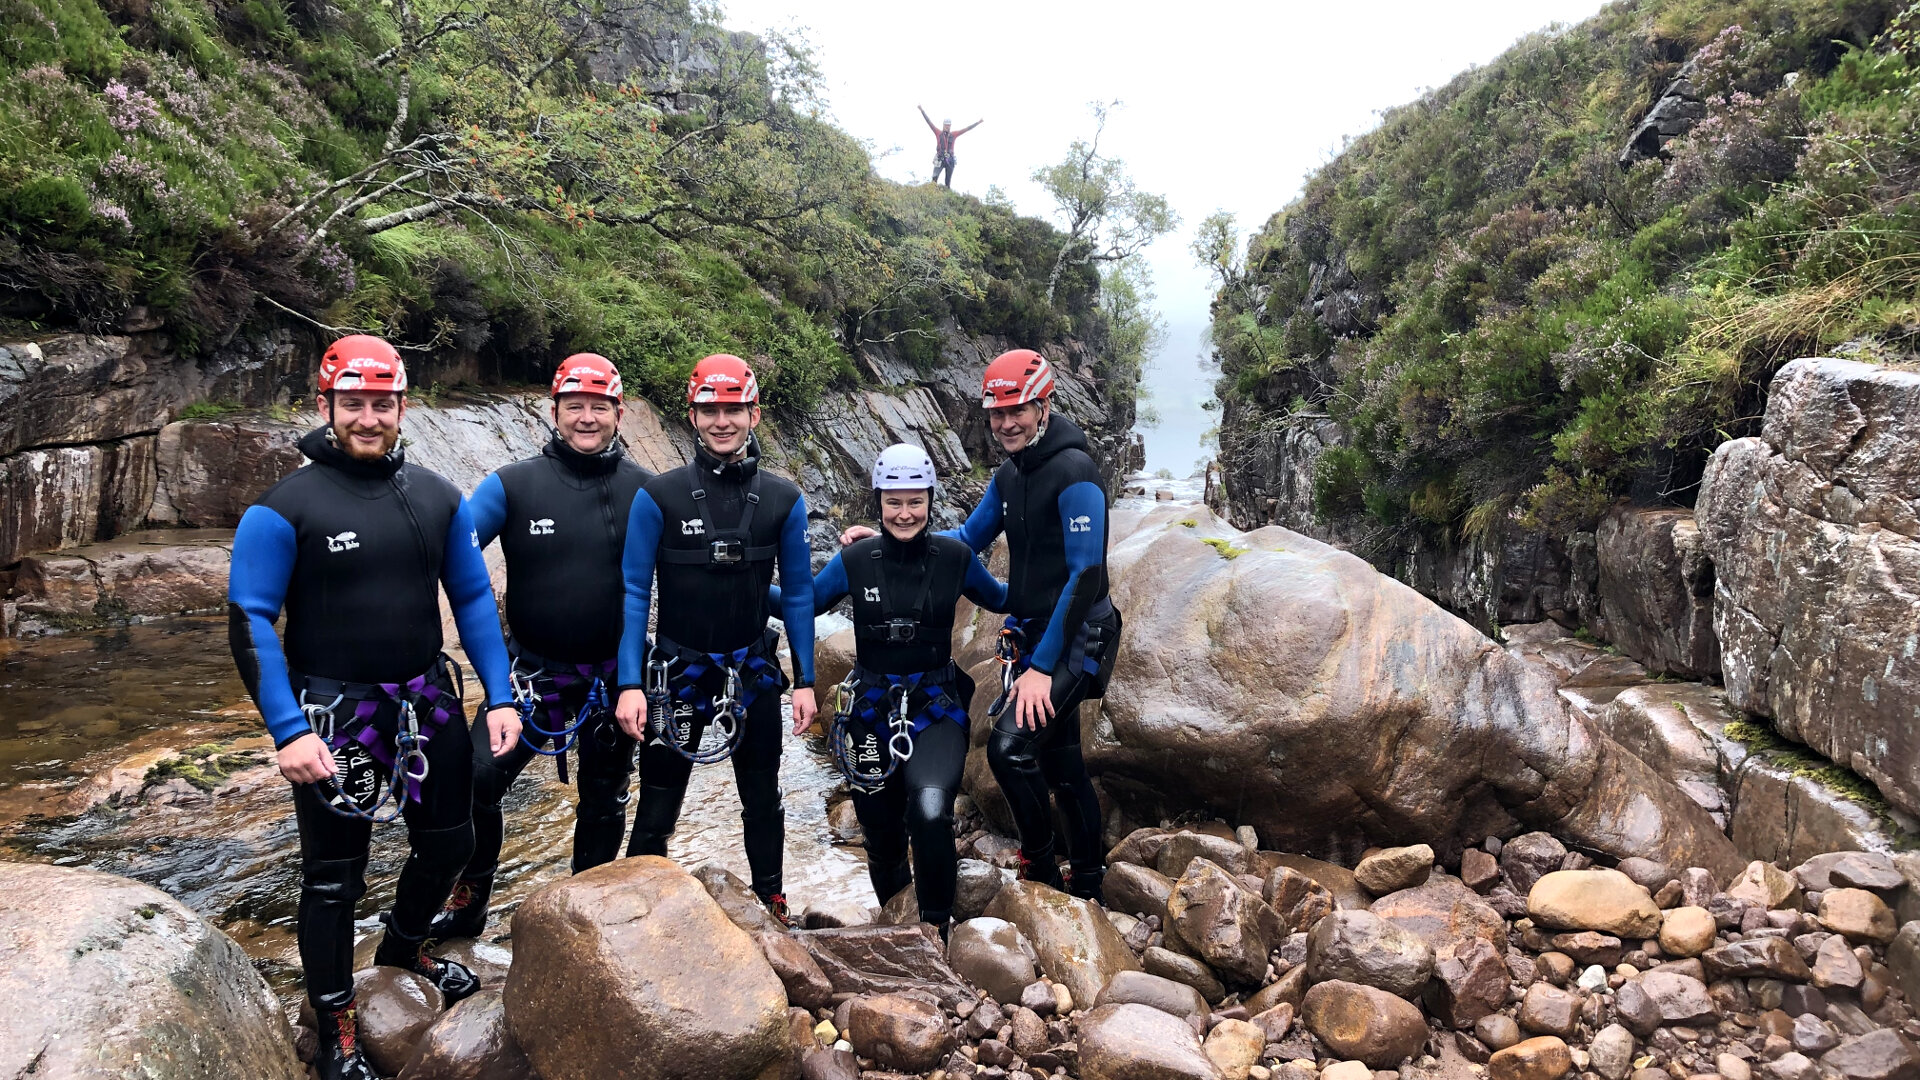 team of canyoneers at base of waterfall